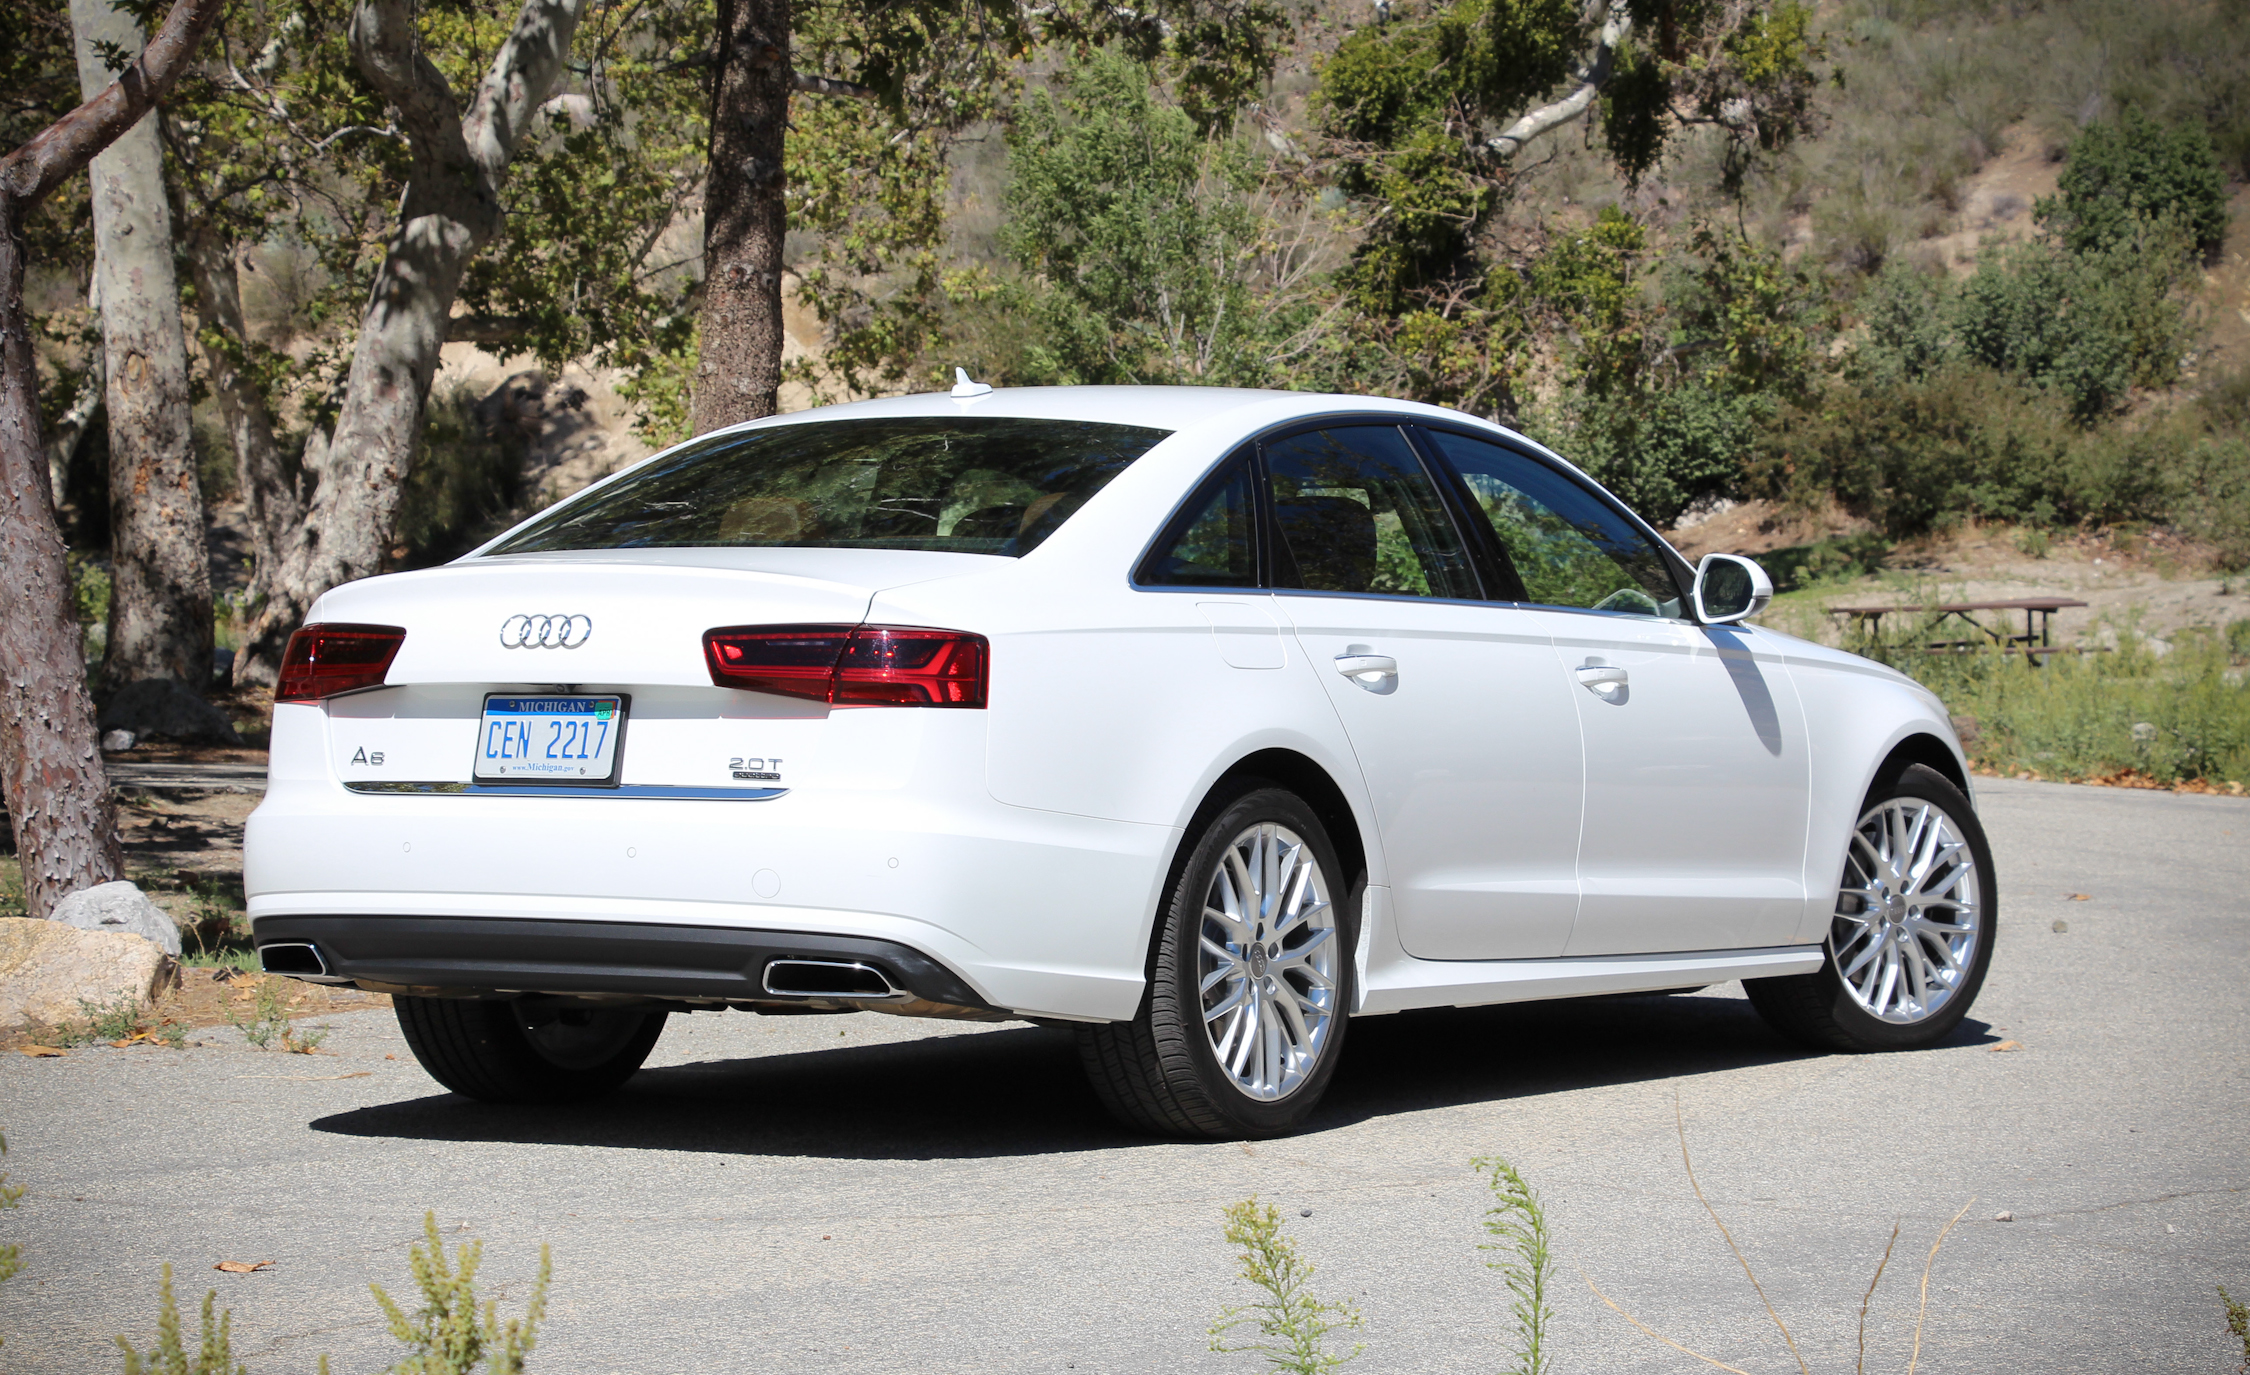 2016 Audi A6 (View 39 of 39)